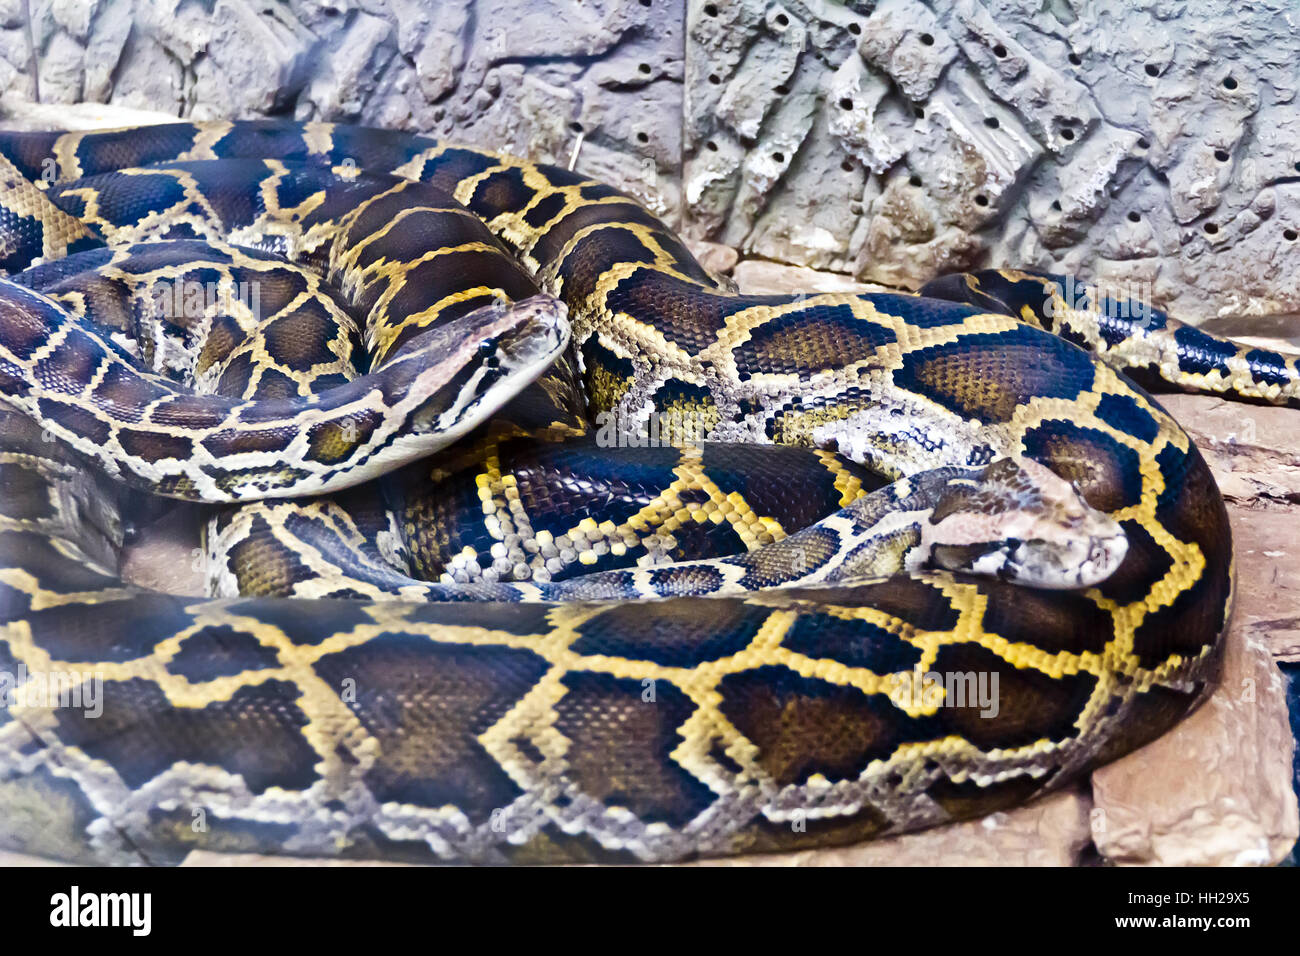 Photo of two snakes python in the midst of stones - Stock Image